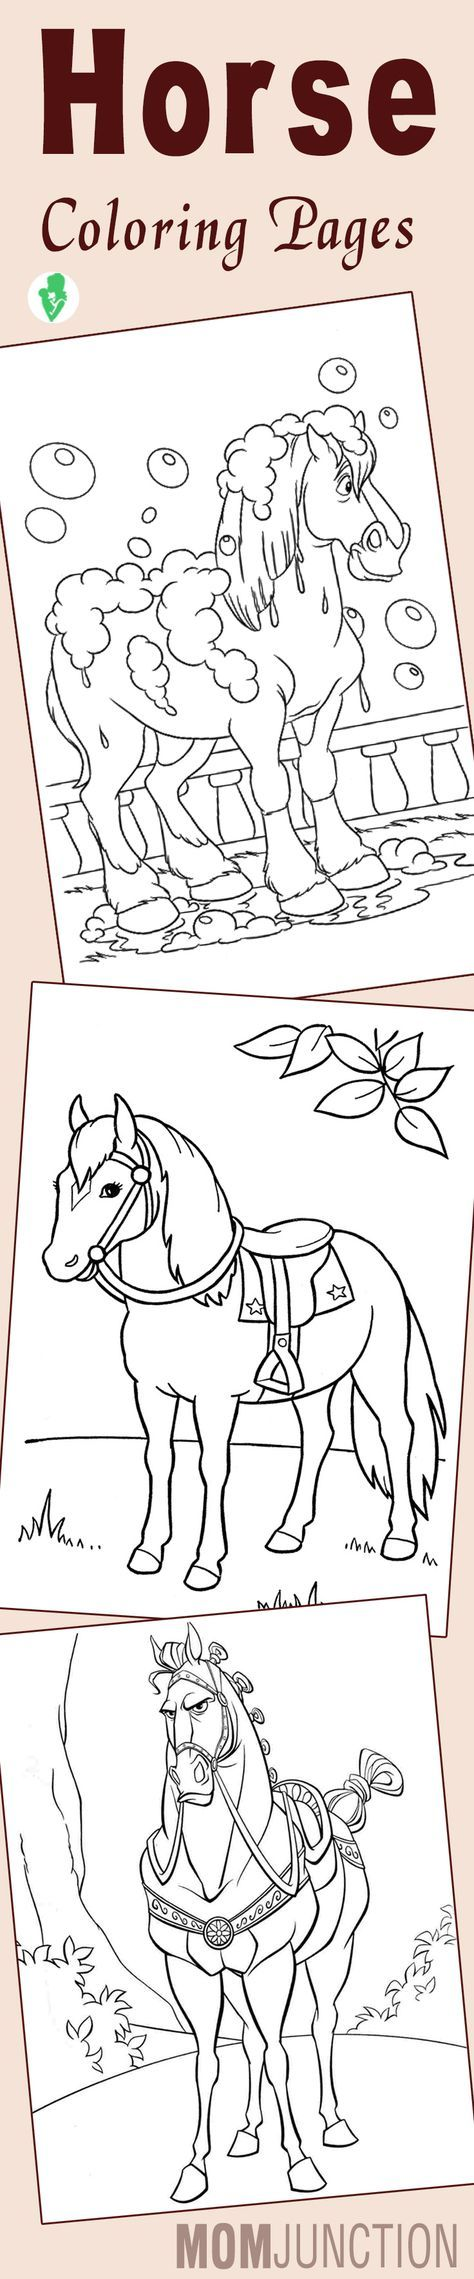 Top 55 Free Printable Horse Coloring Pages Online Horse Coloring Pages Coloring Pages Horse Coloring [ 2279 x 474 Pixel ]